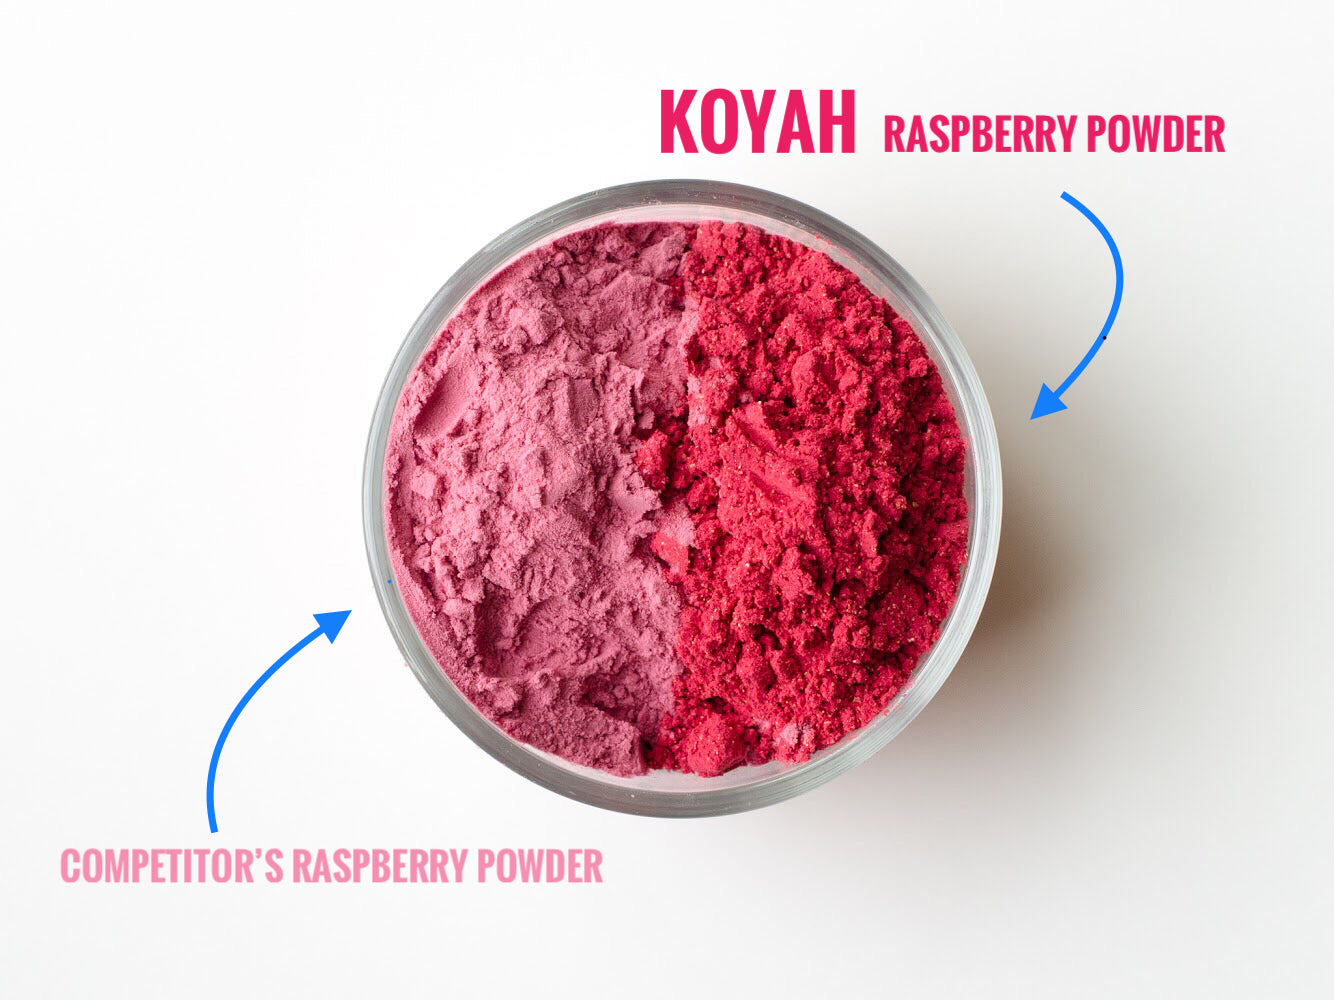 KOYAH Raspberry Powder vs Competitor Raspberry Powder